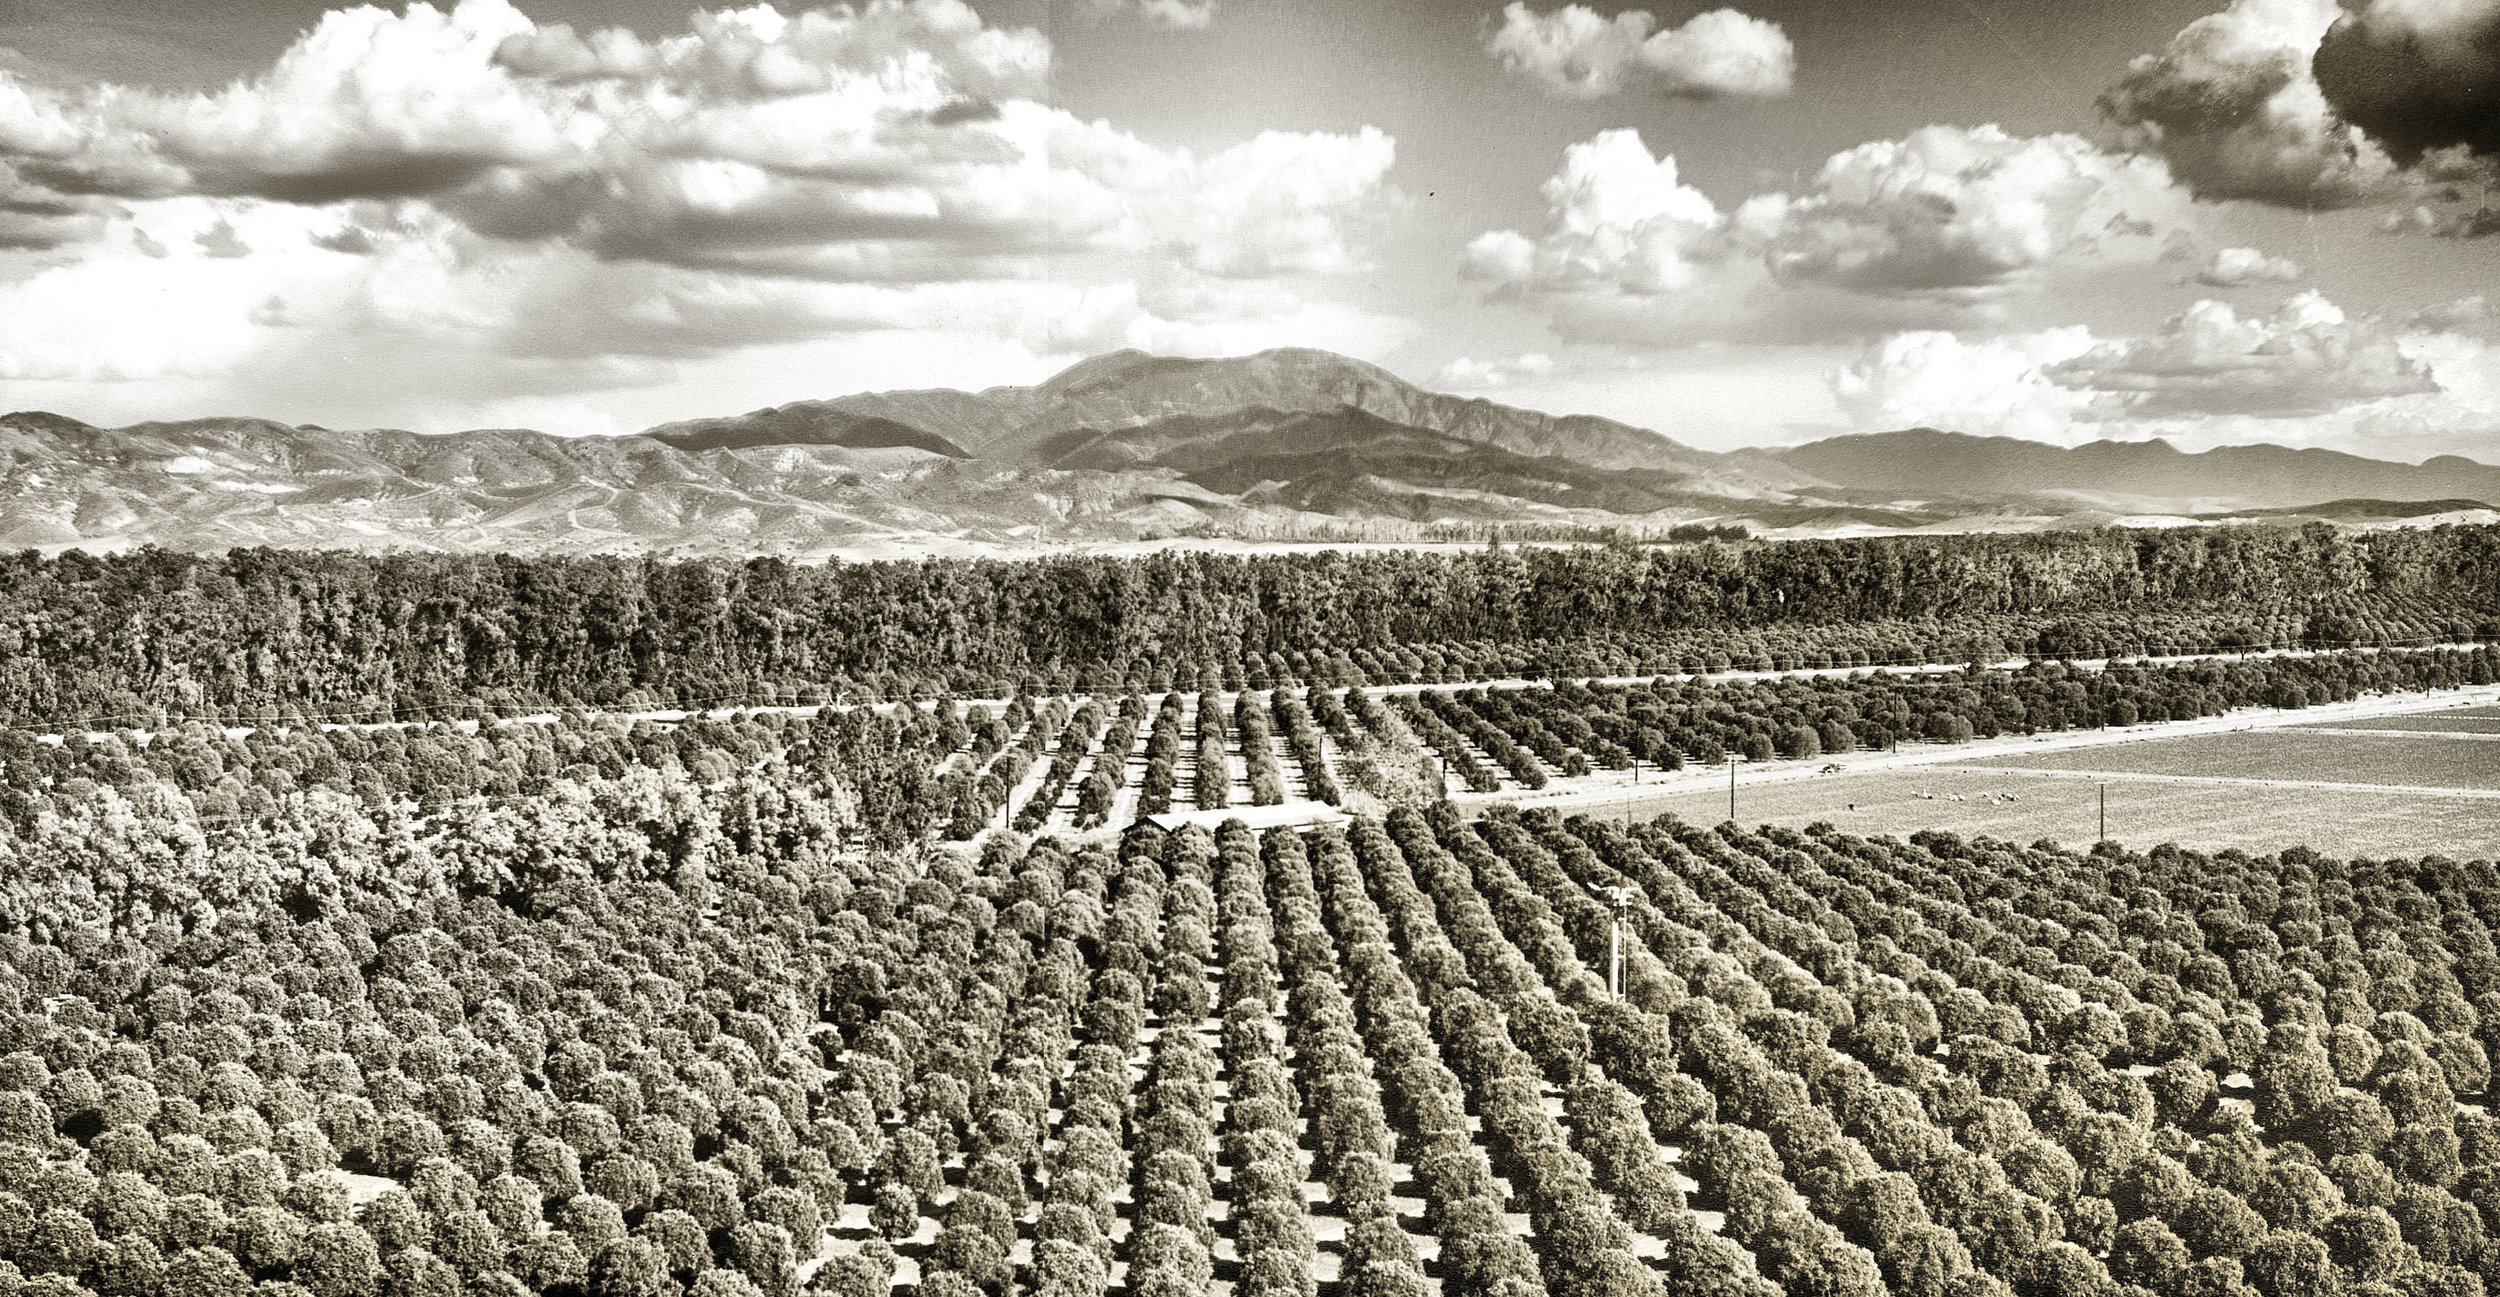 Looking across the orange groves of the Irvine Ranch towards Old Saddleback, circa 1956 (courtesy the Orange Public Library and History Center).